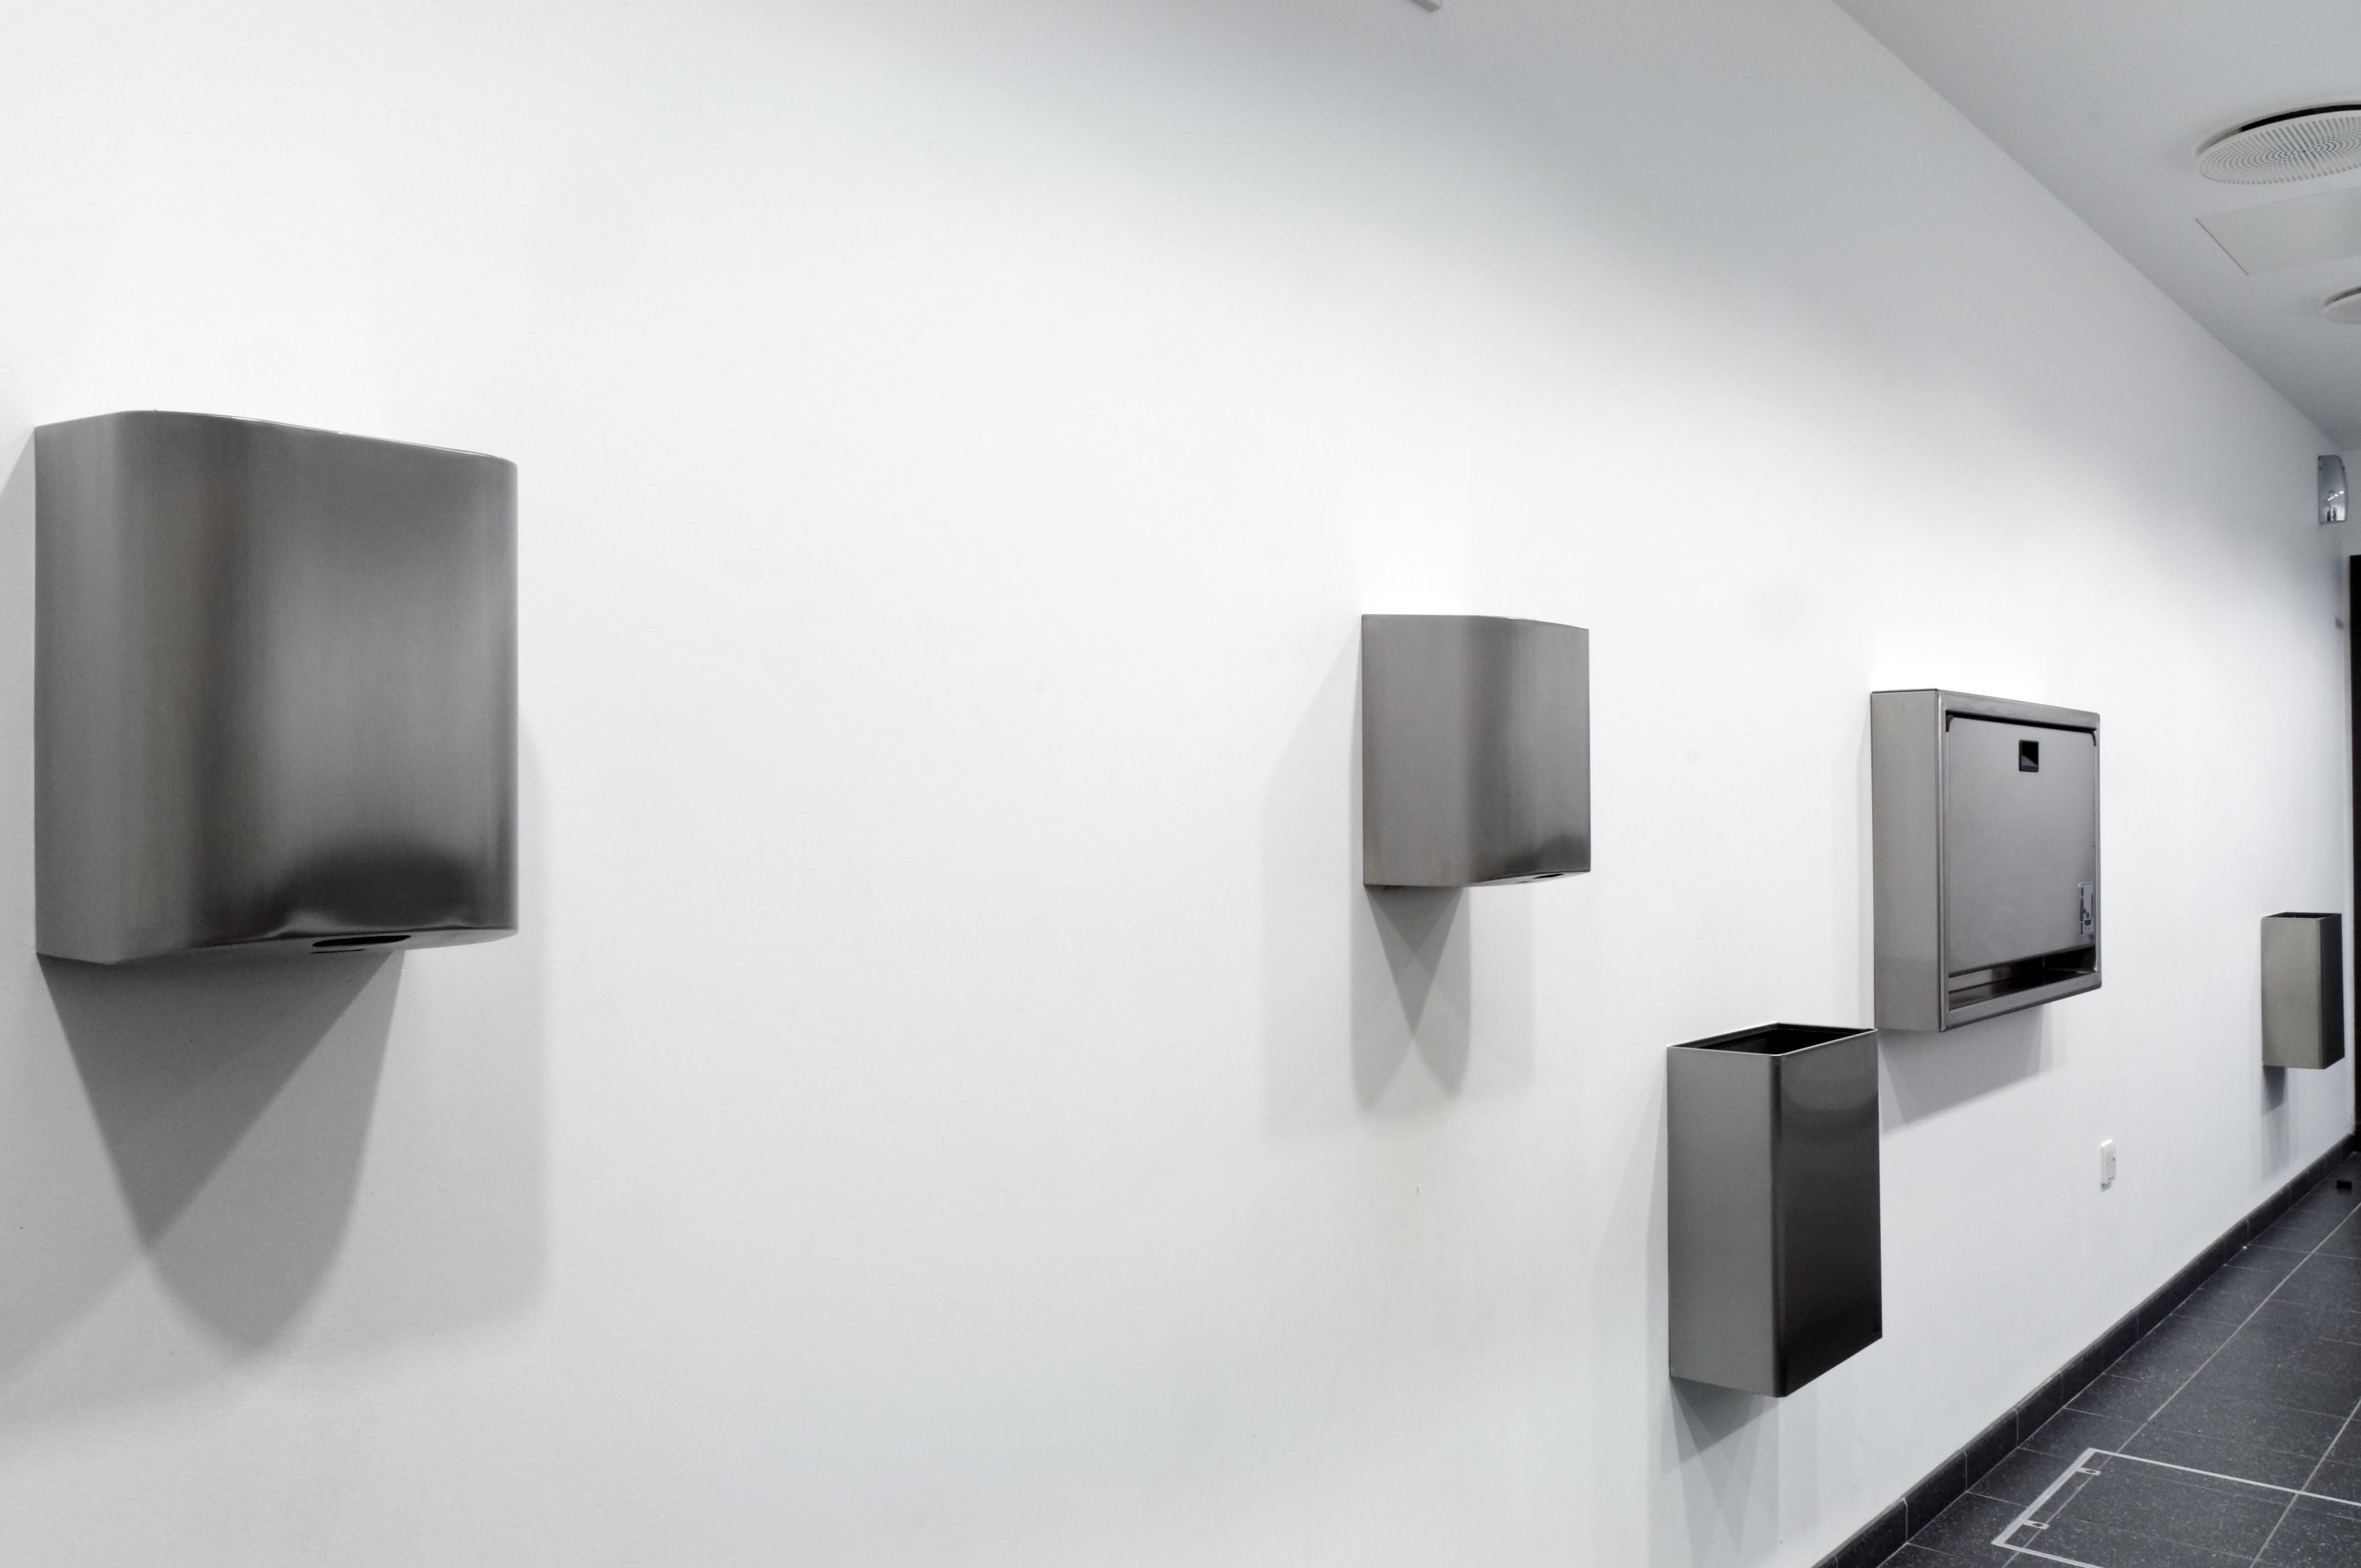 Dolphin Hand Dryer and Commercial Washroom Accessories at Kensington and Chelsea College